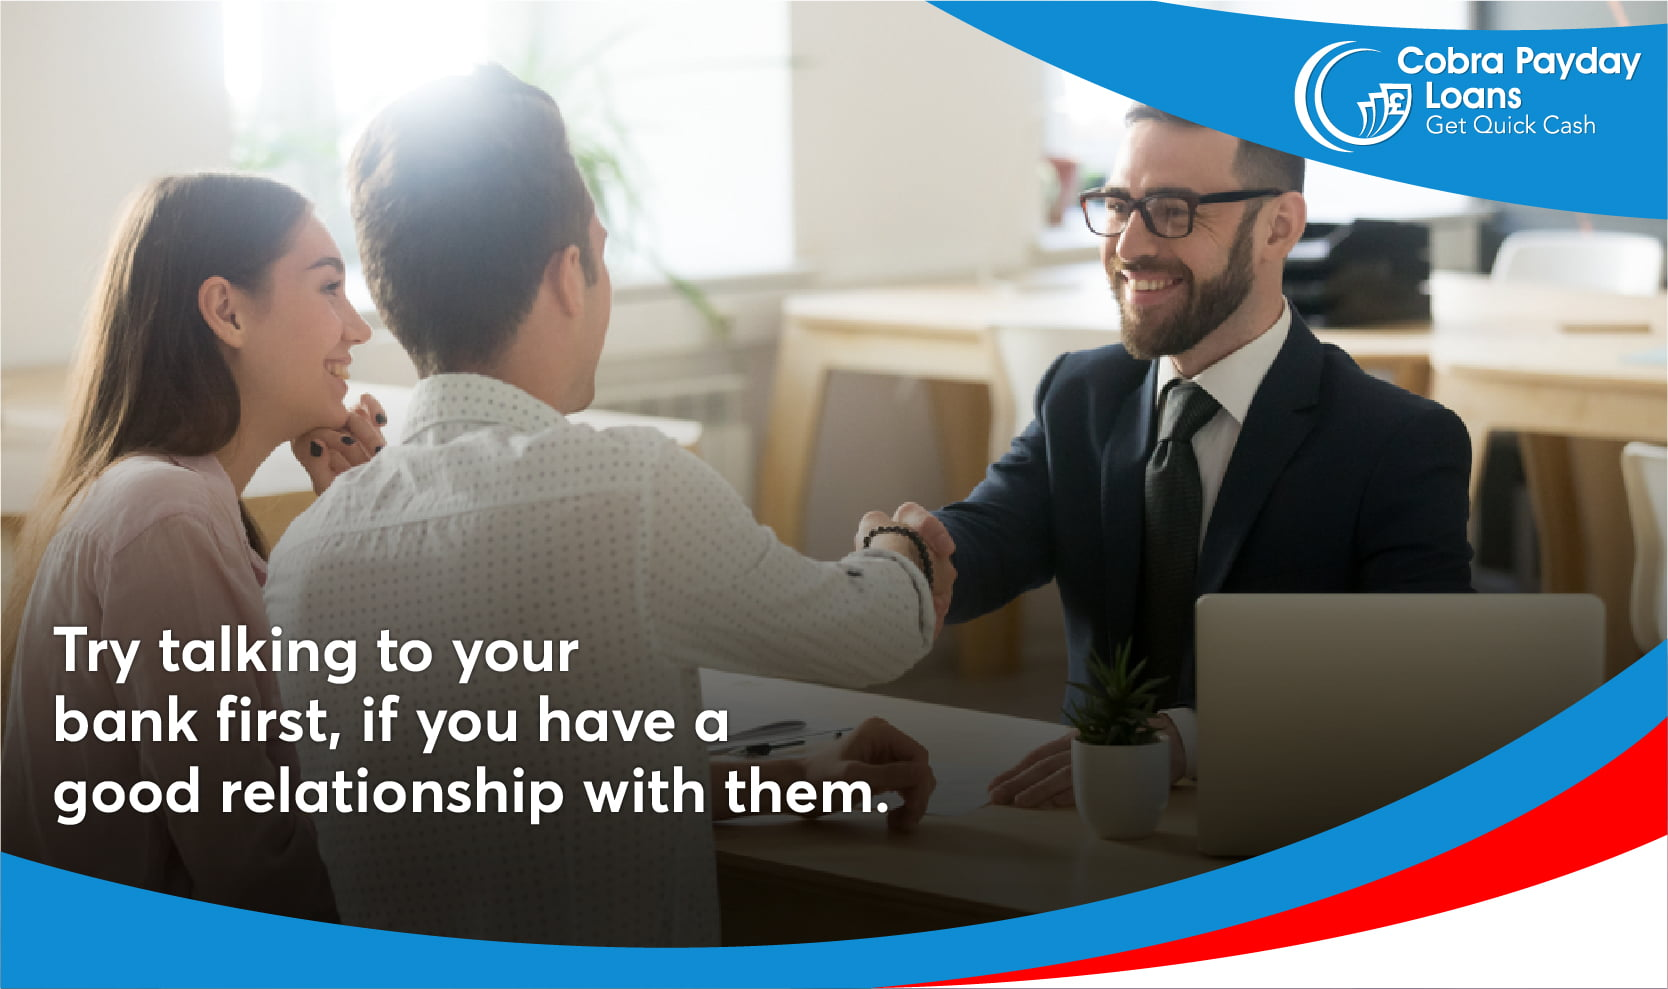 Try talking to your bank first, if you have a good relationship with them